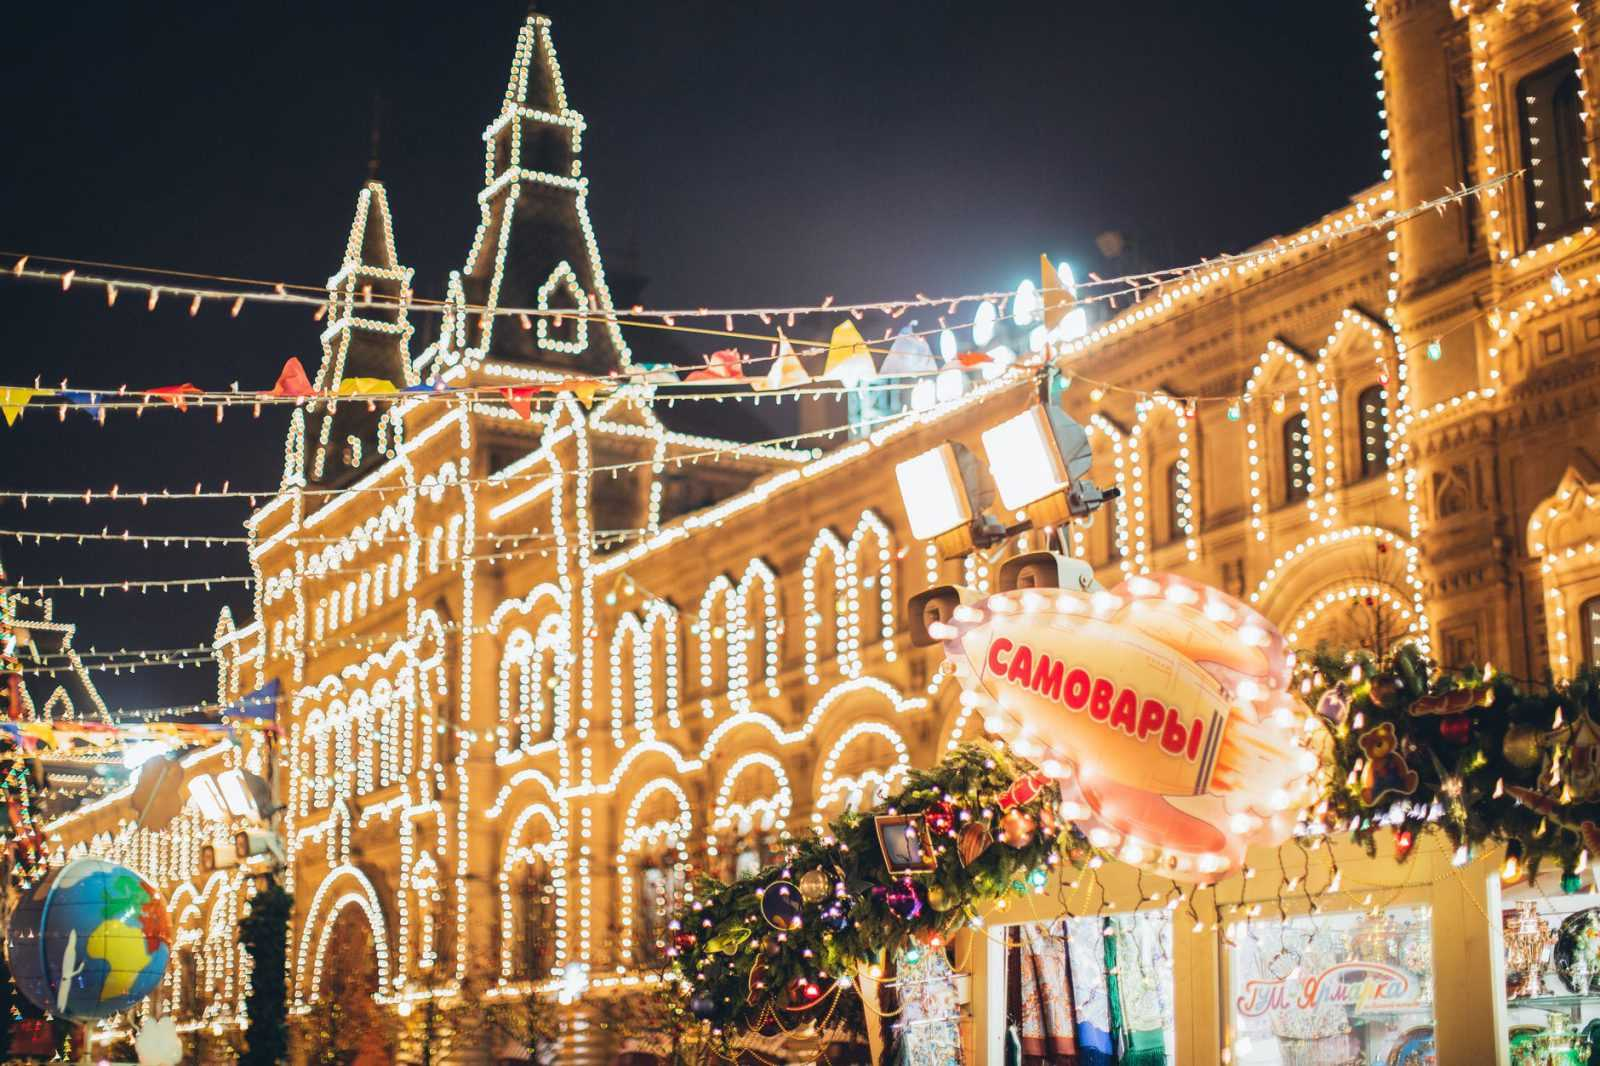 street decorated with garlands of lights and buntings to new year holidays in downtown